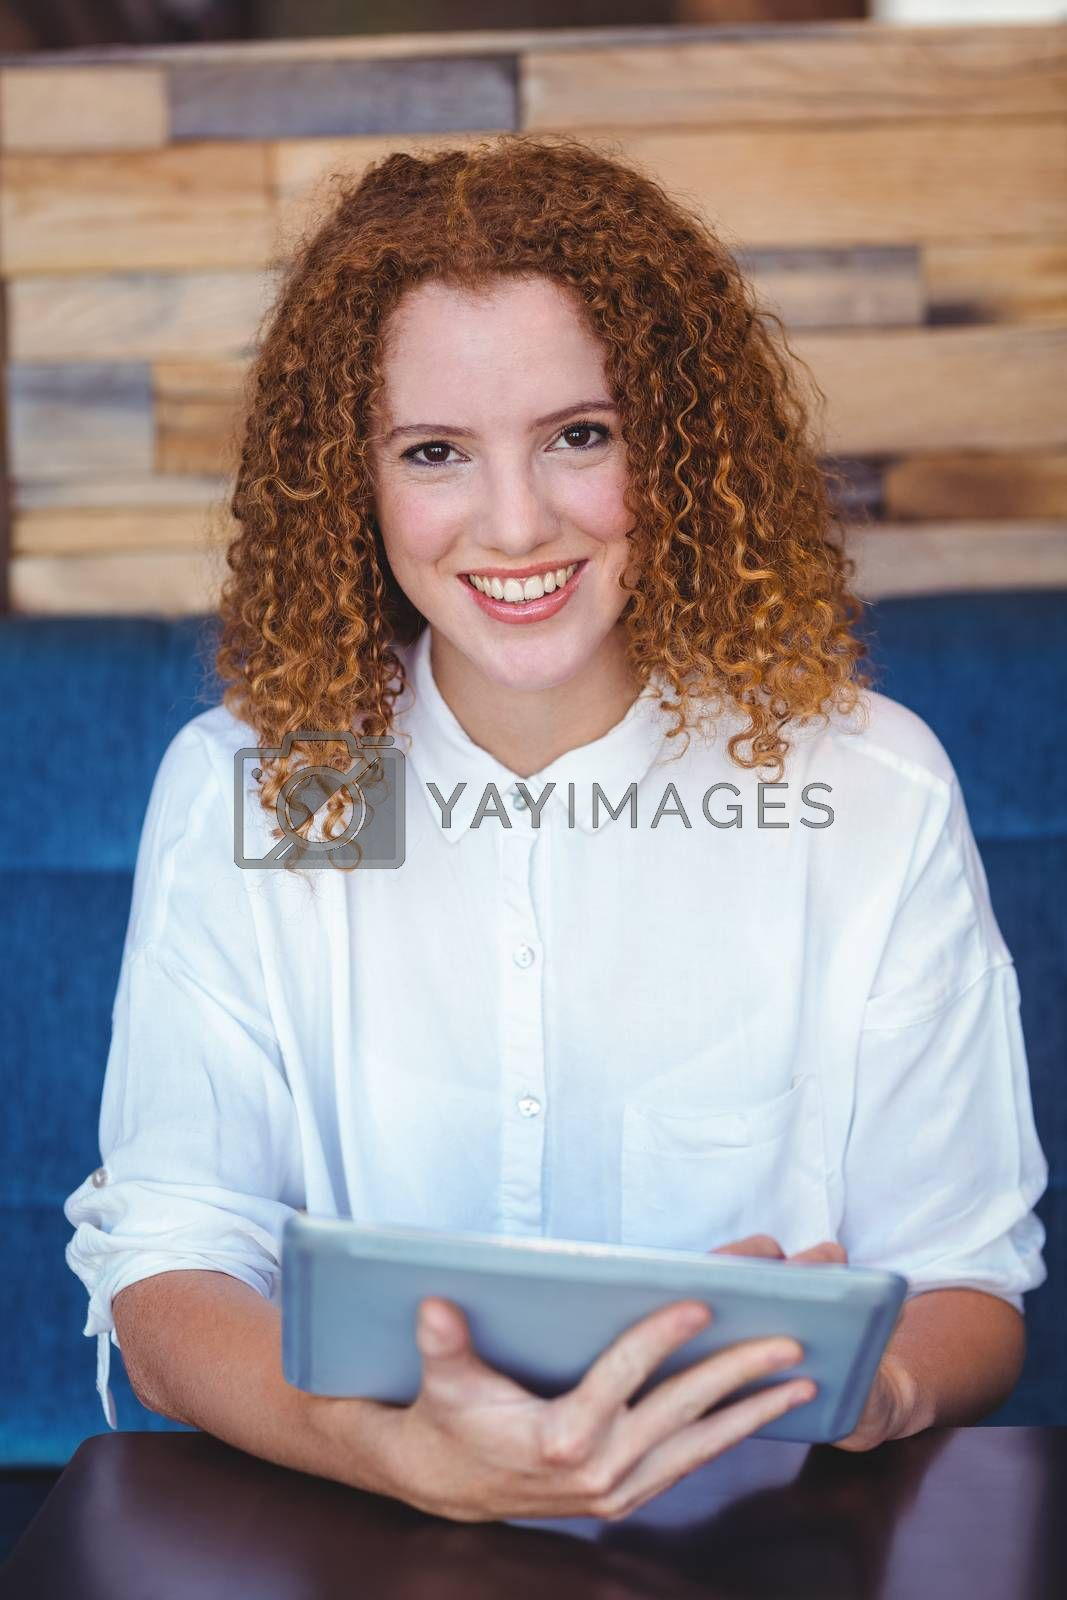 Royalty free image of pretty girl using a tablet by Wavebreakmedia